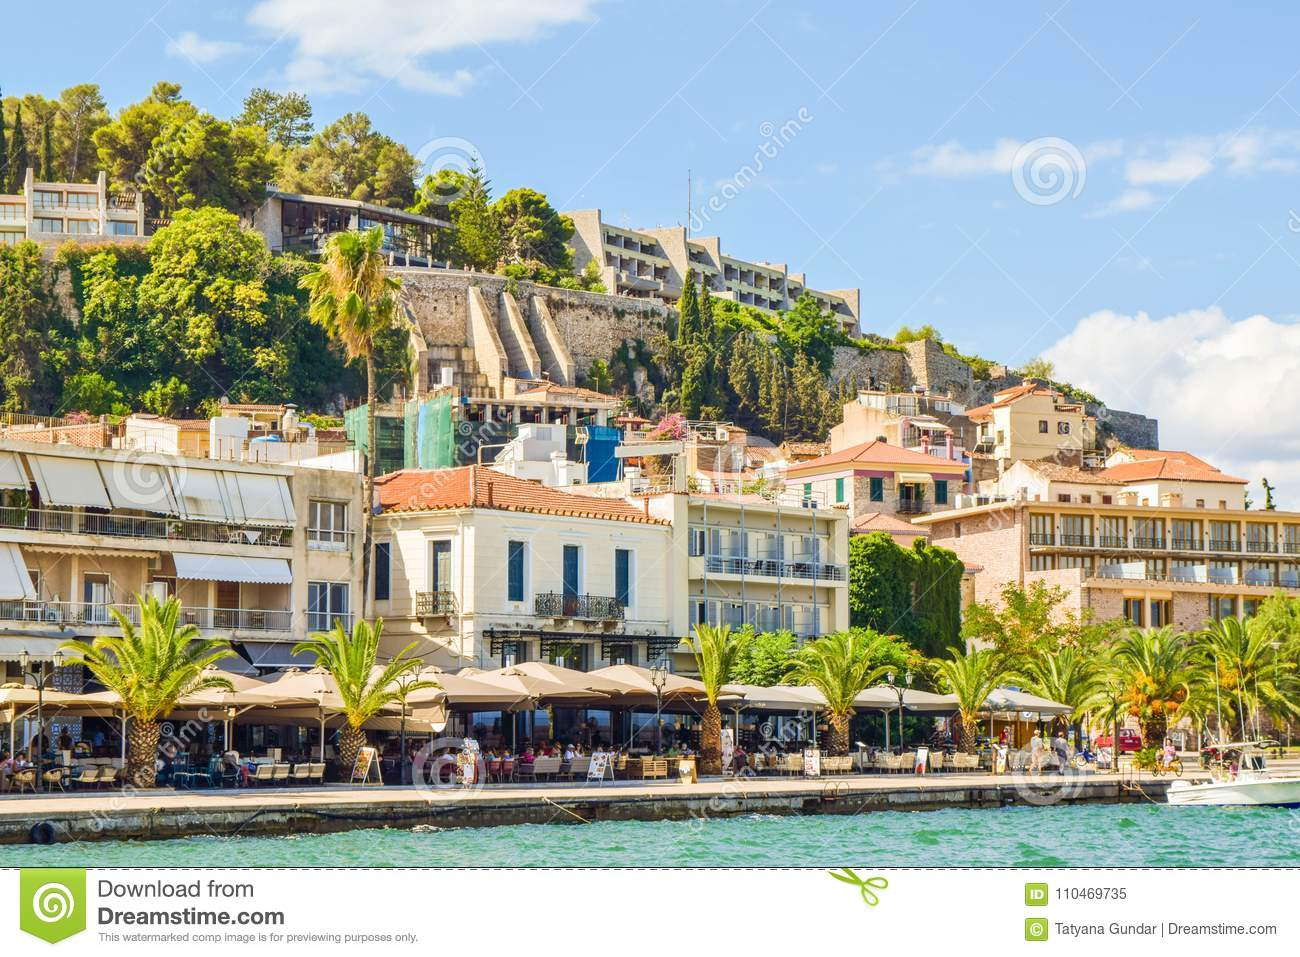 Сityscape of Nafplion